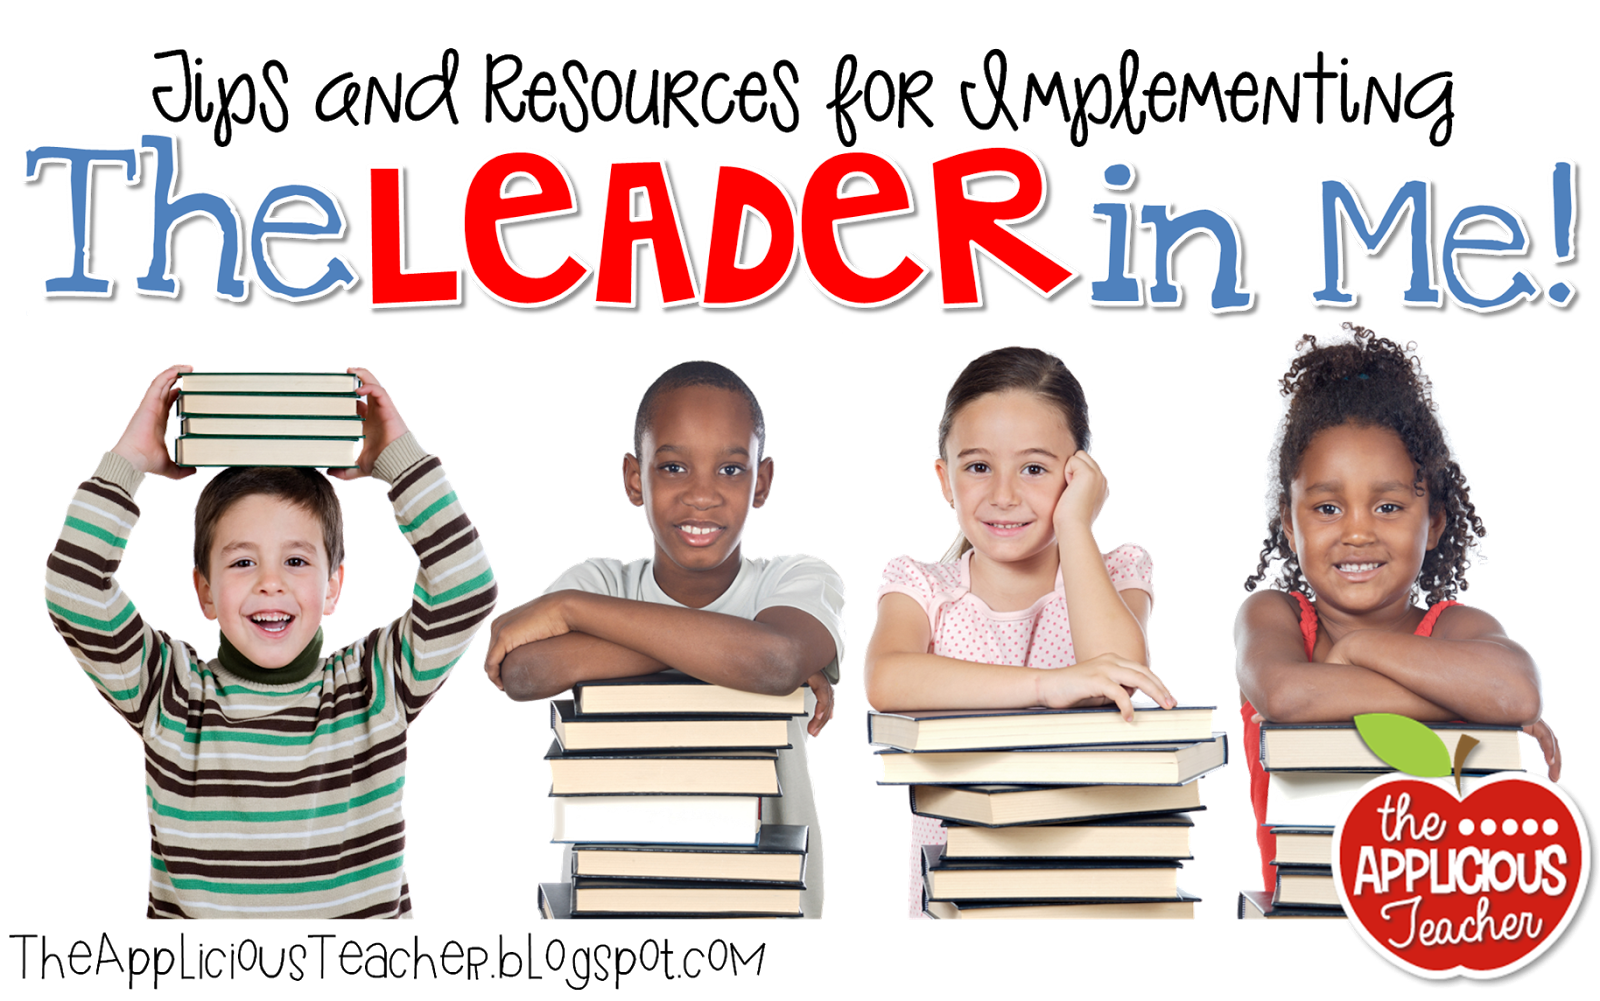 Tips And Resources For Building Tomorrow Leaders Today